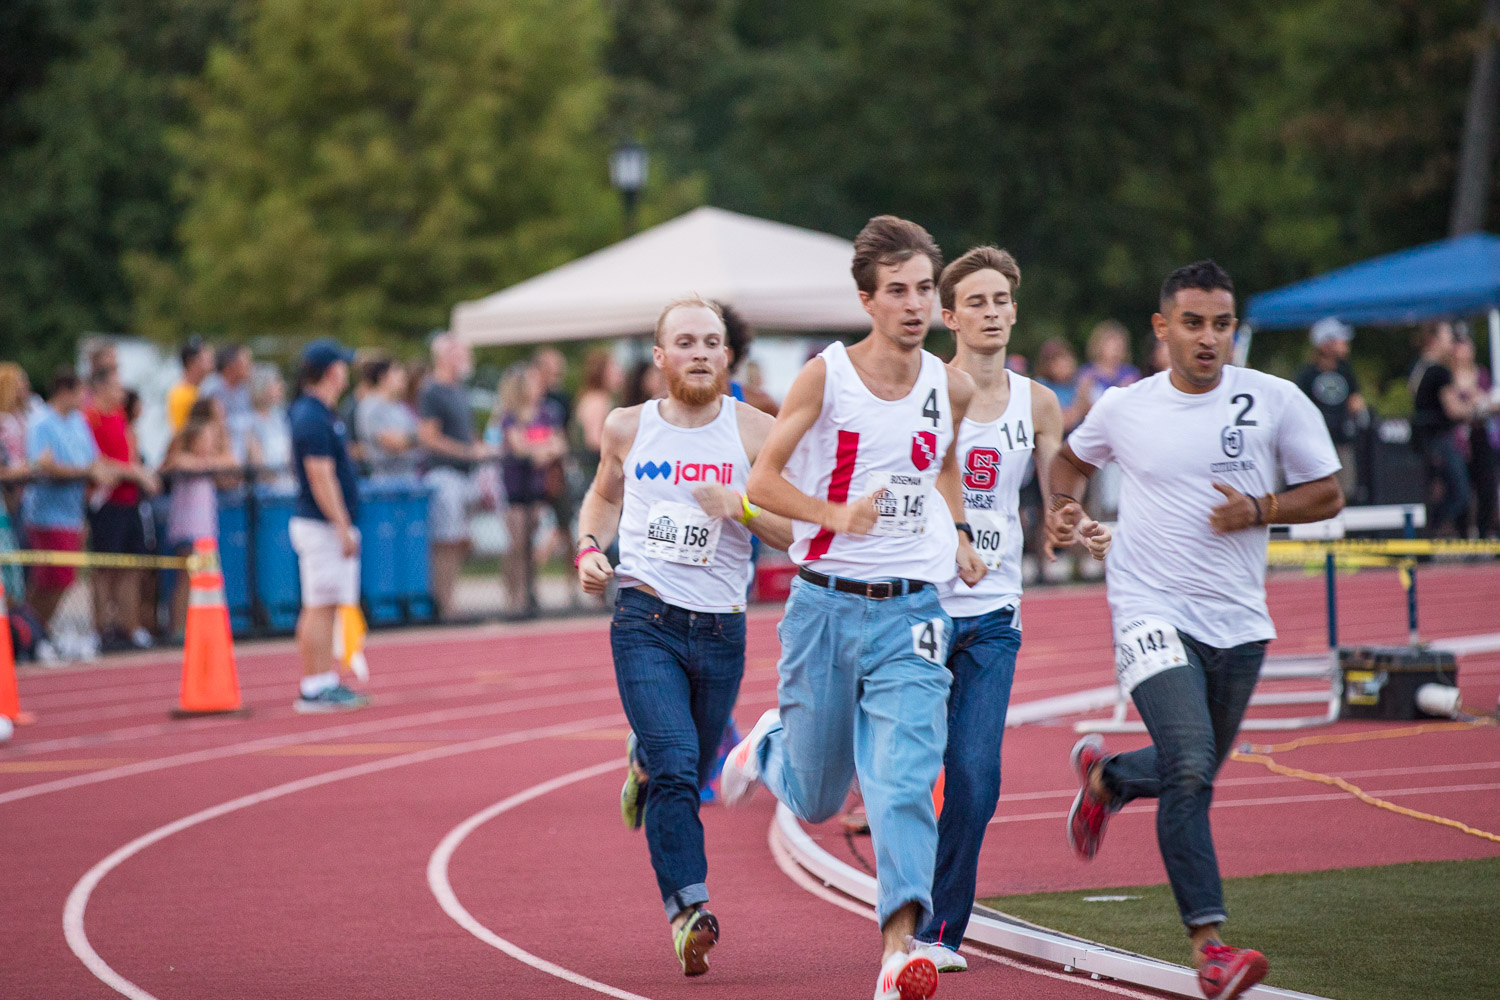 Men's competitors in the Raleigh Denim Mile.